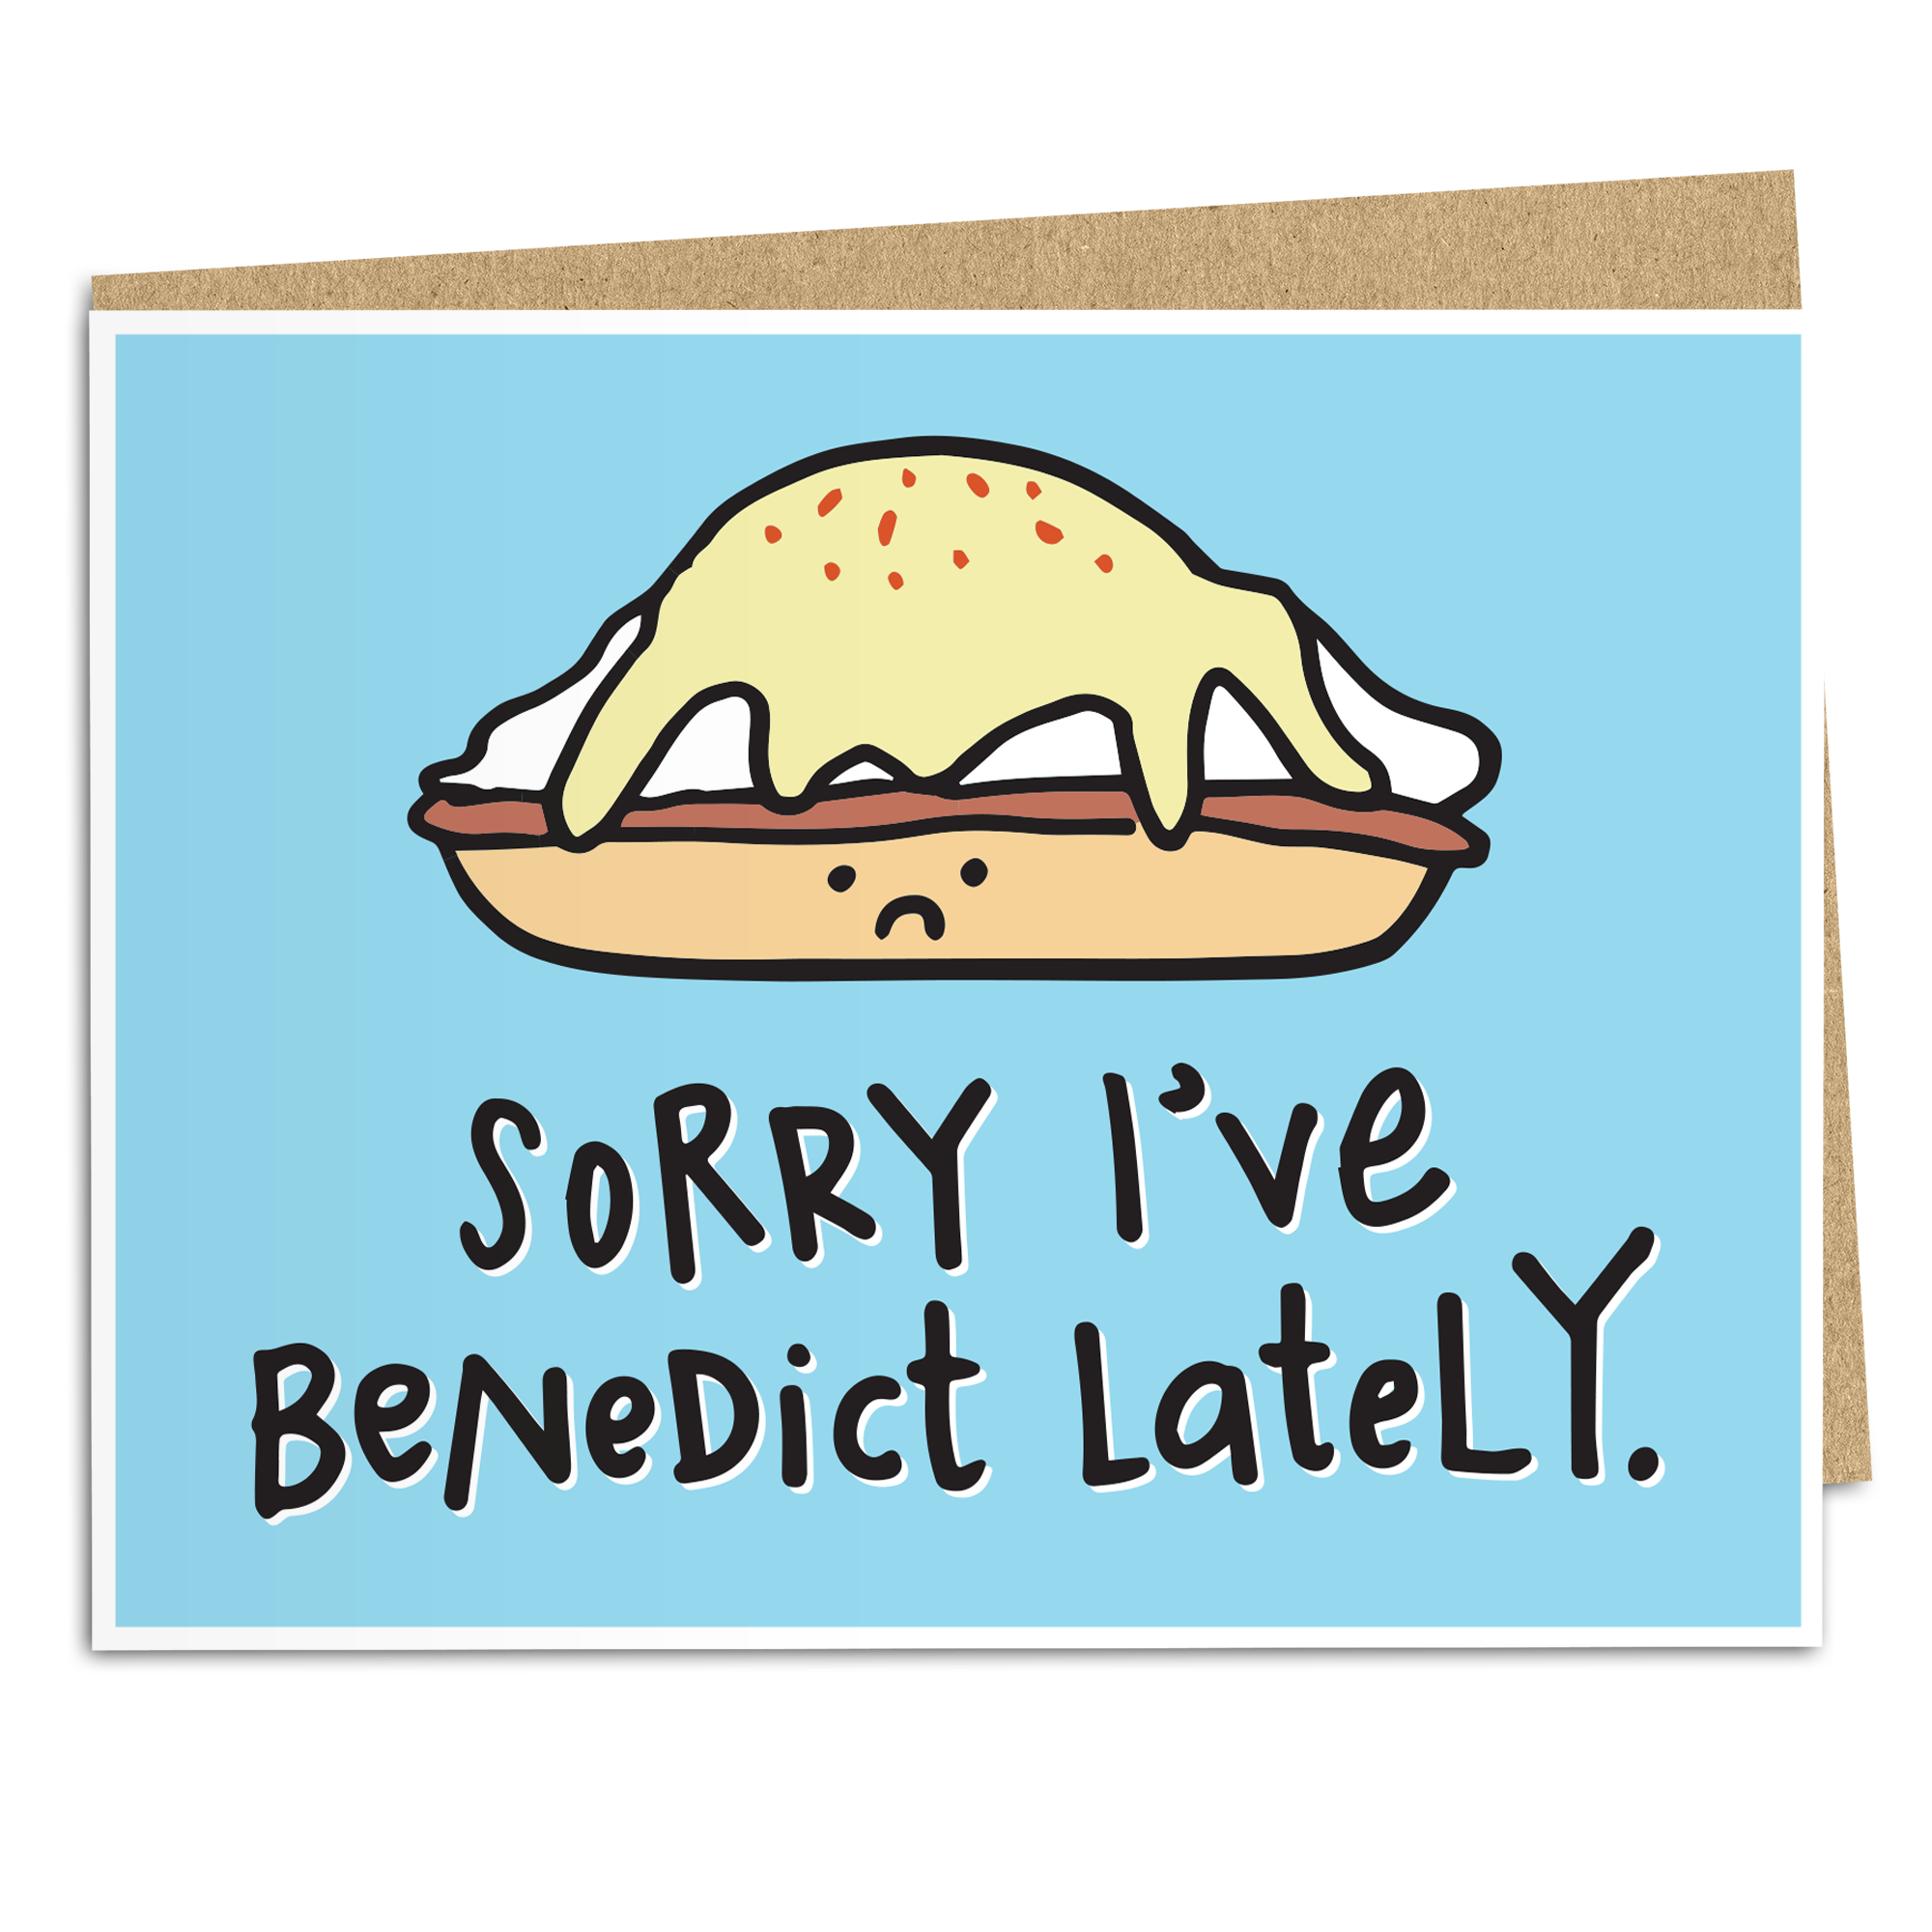 Sorry I've Benedict Lately - The Good Snail